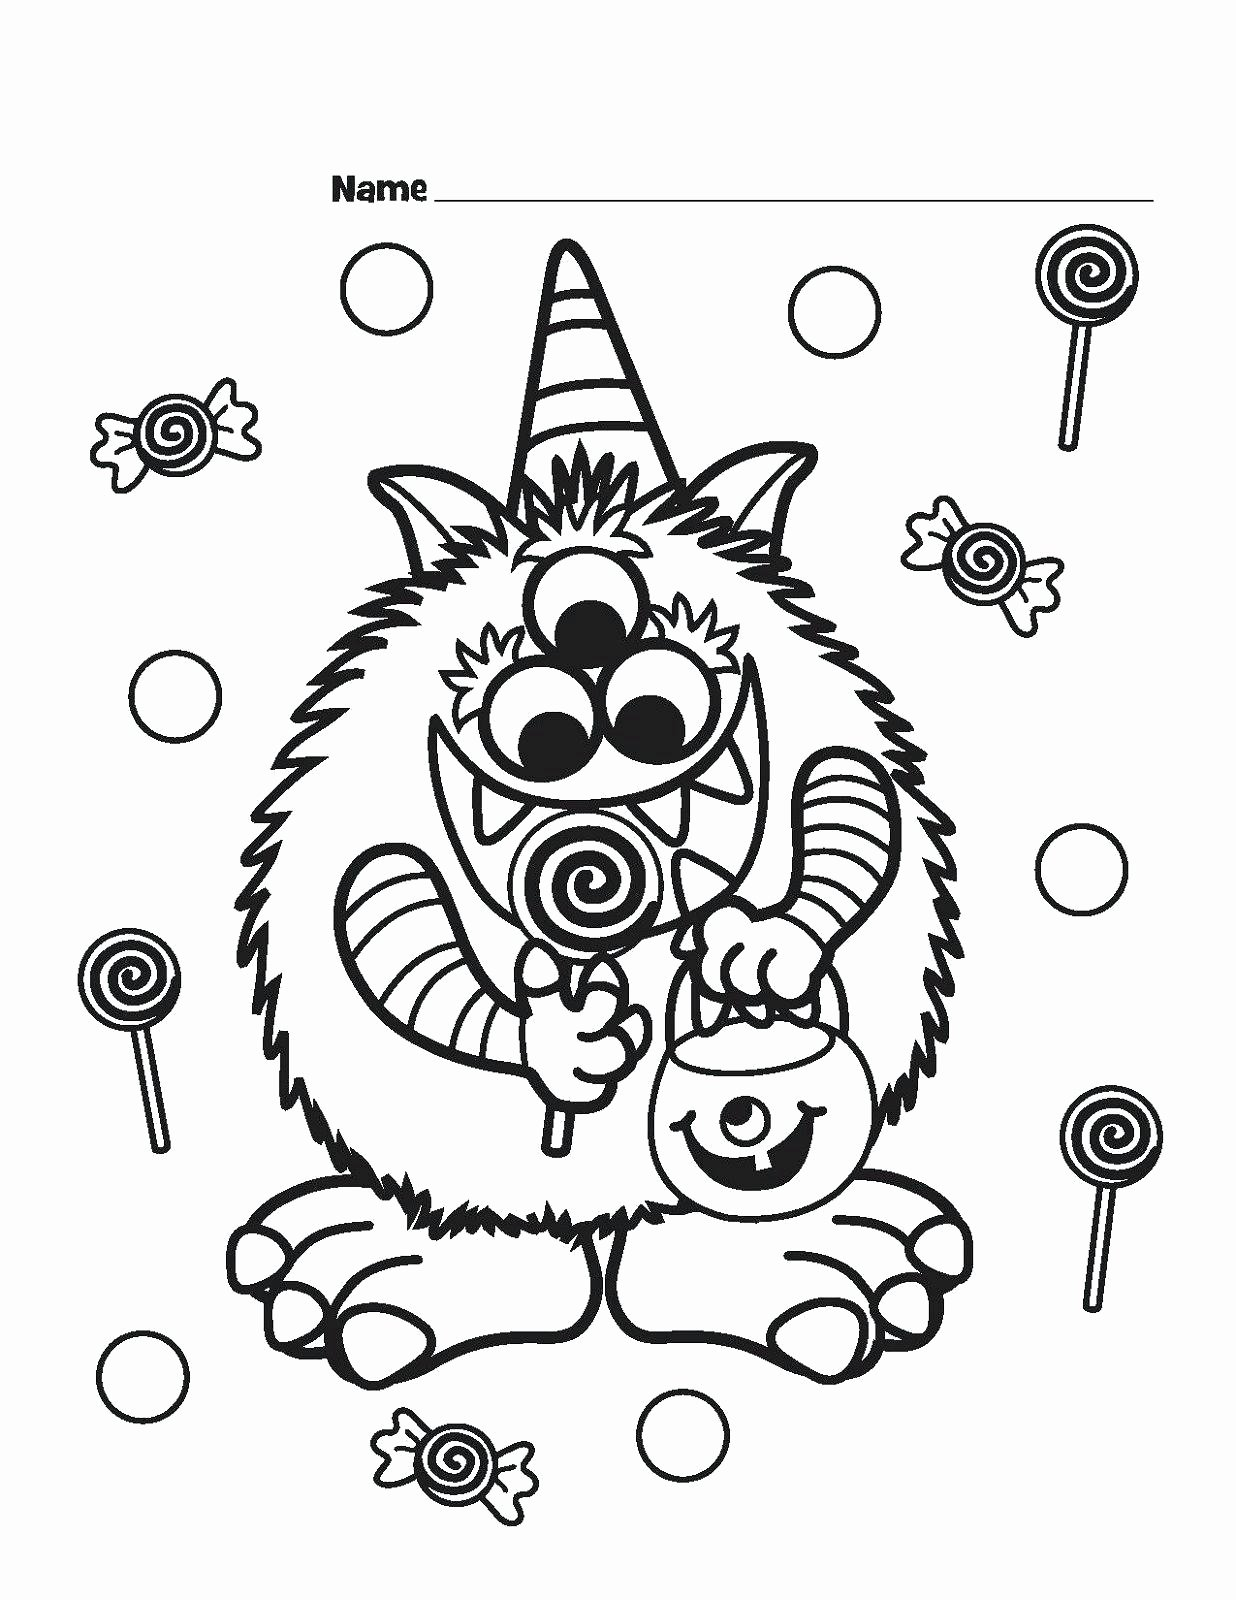 Scarecrow Worksheets for Preschoolers Best Of Coloring for Kids Incredible Halloween Free Math Worksheets